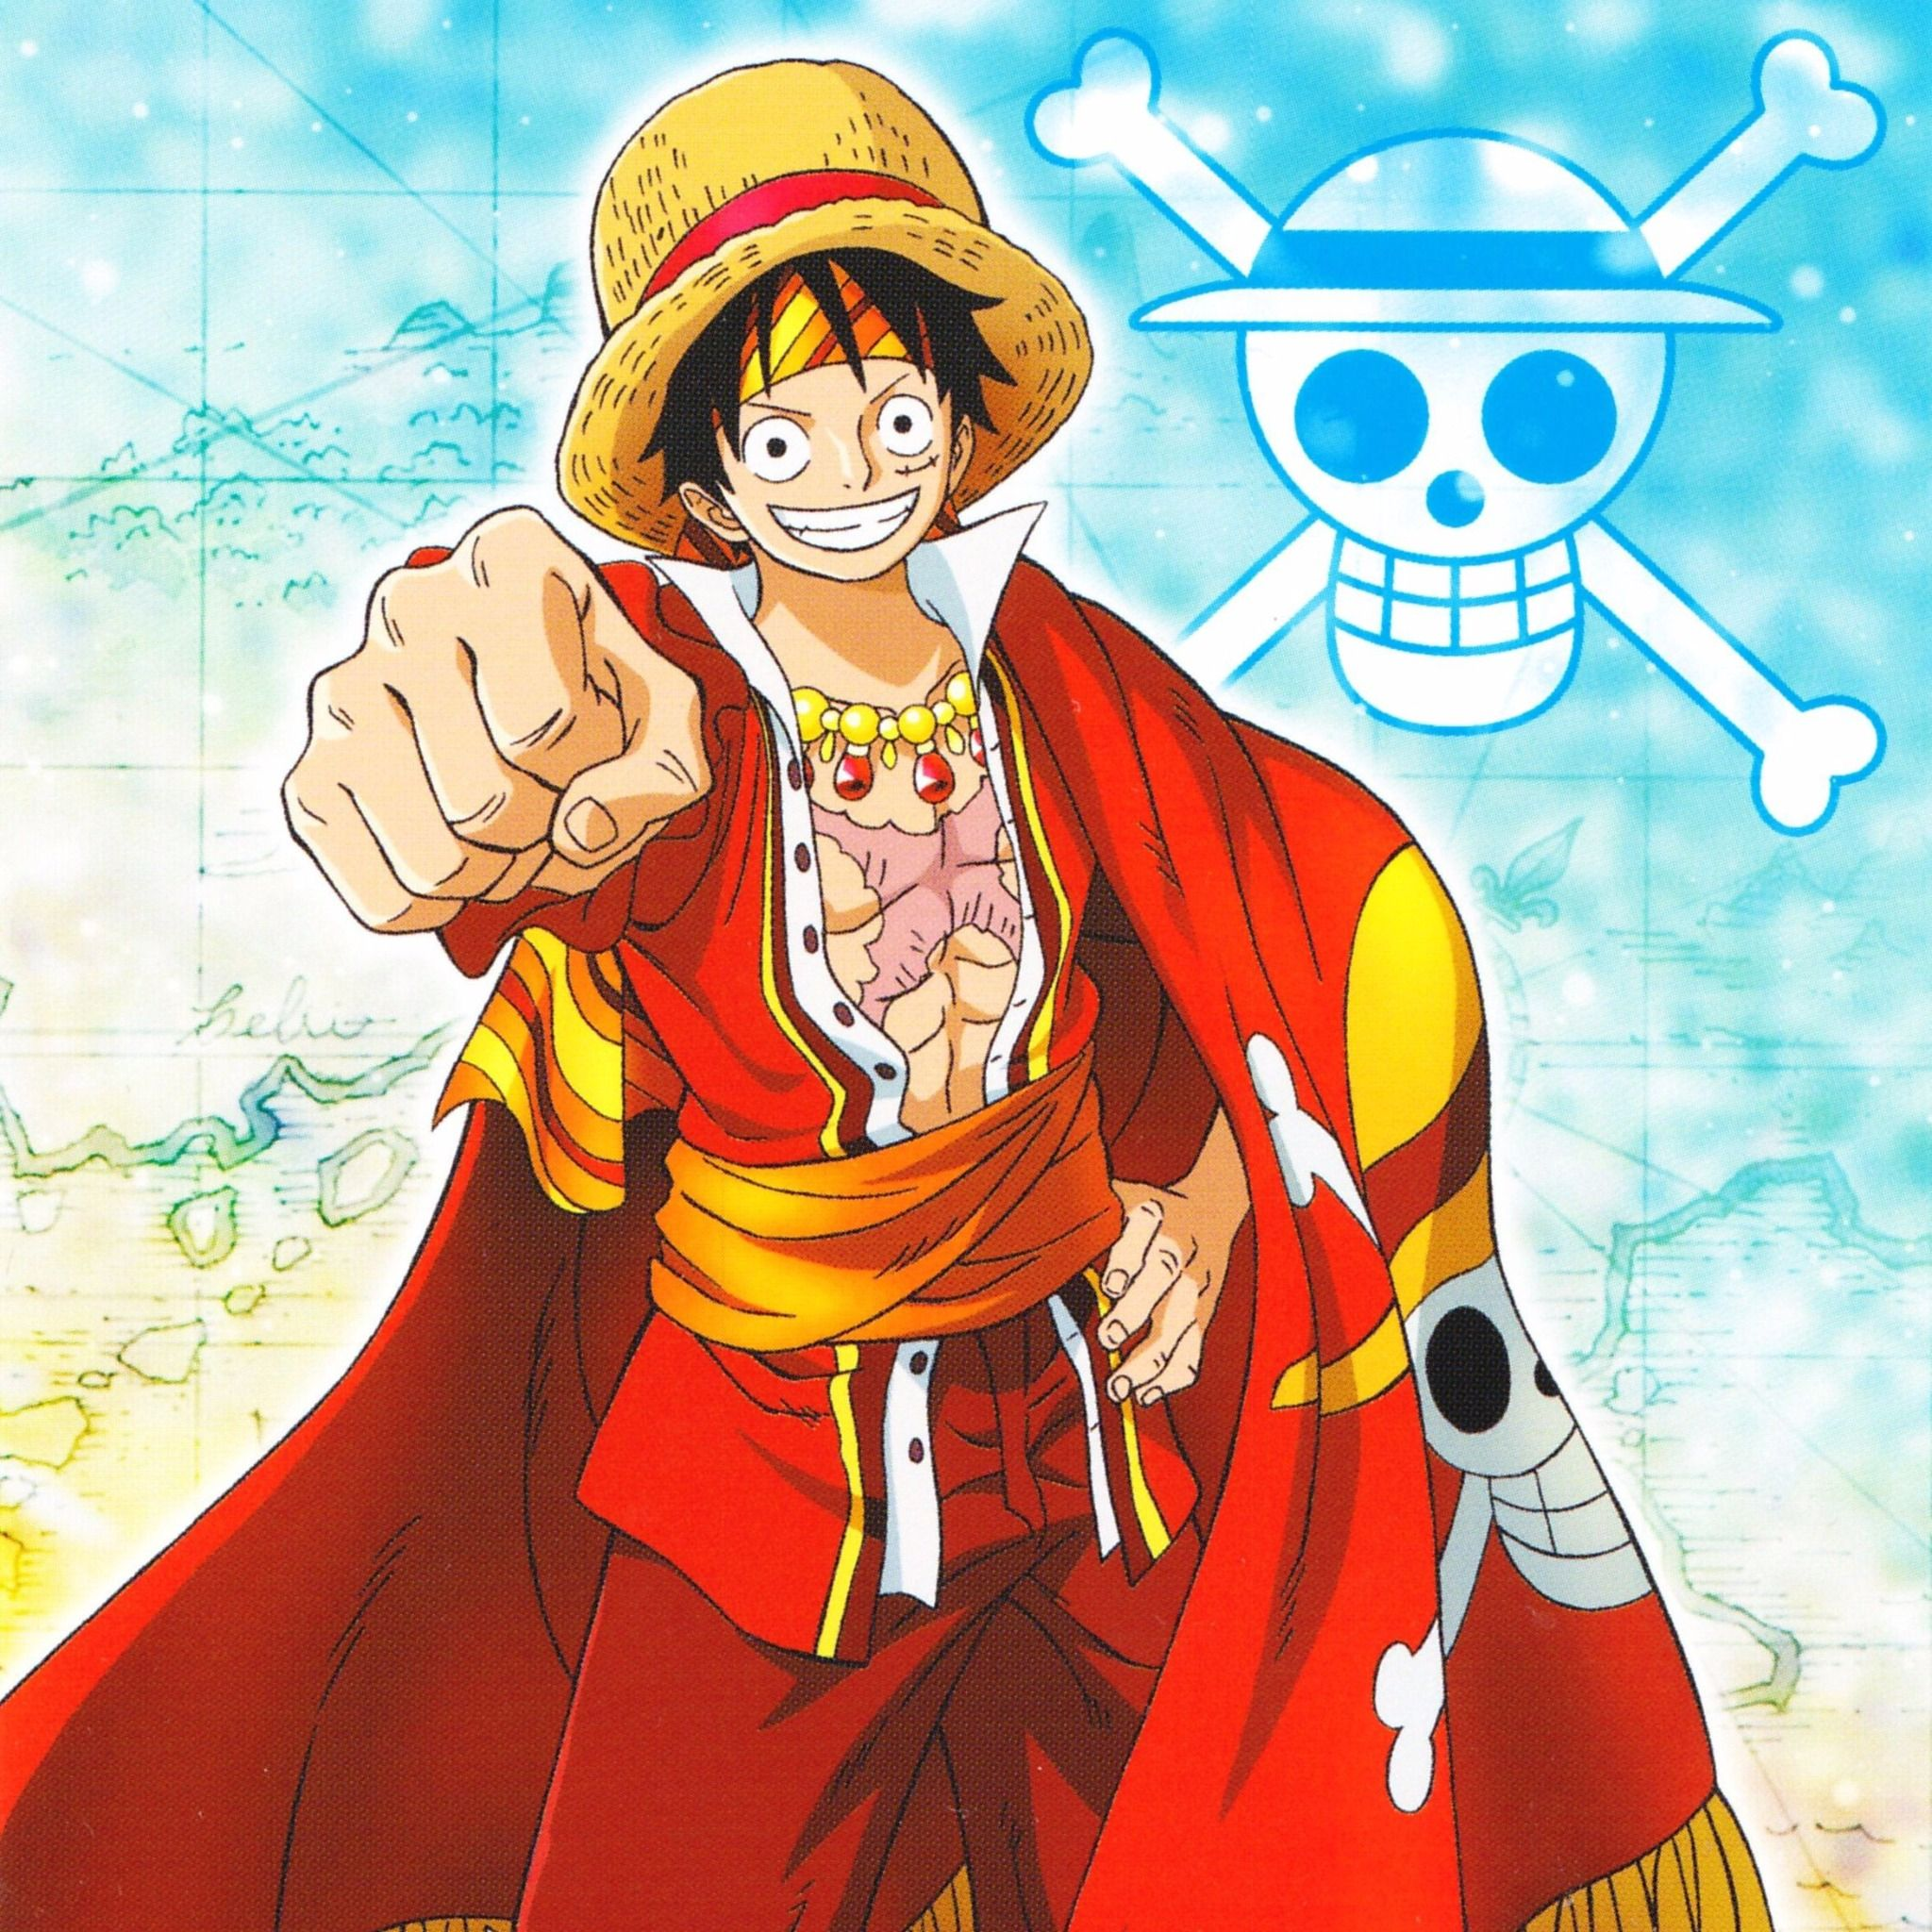 One Piece Luffy Wallpaper: Young Luffy. Who Doesn't Like Luffy In One Piece?! Tap For